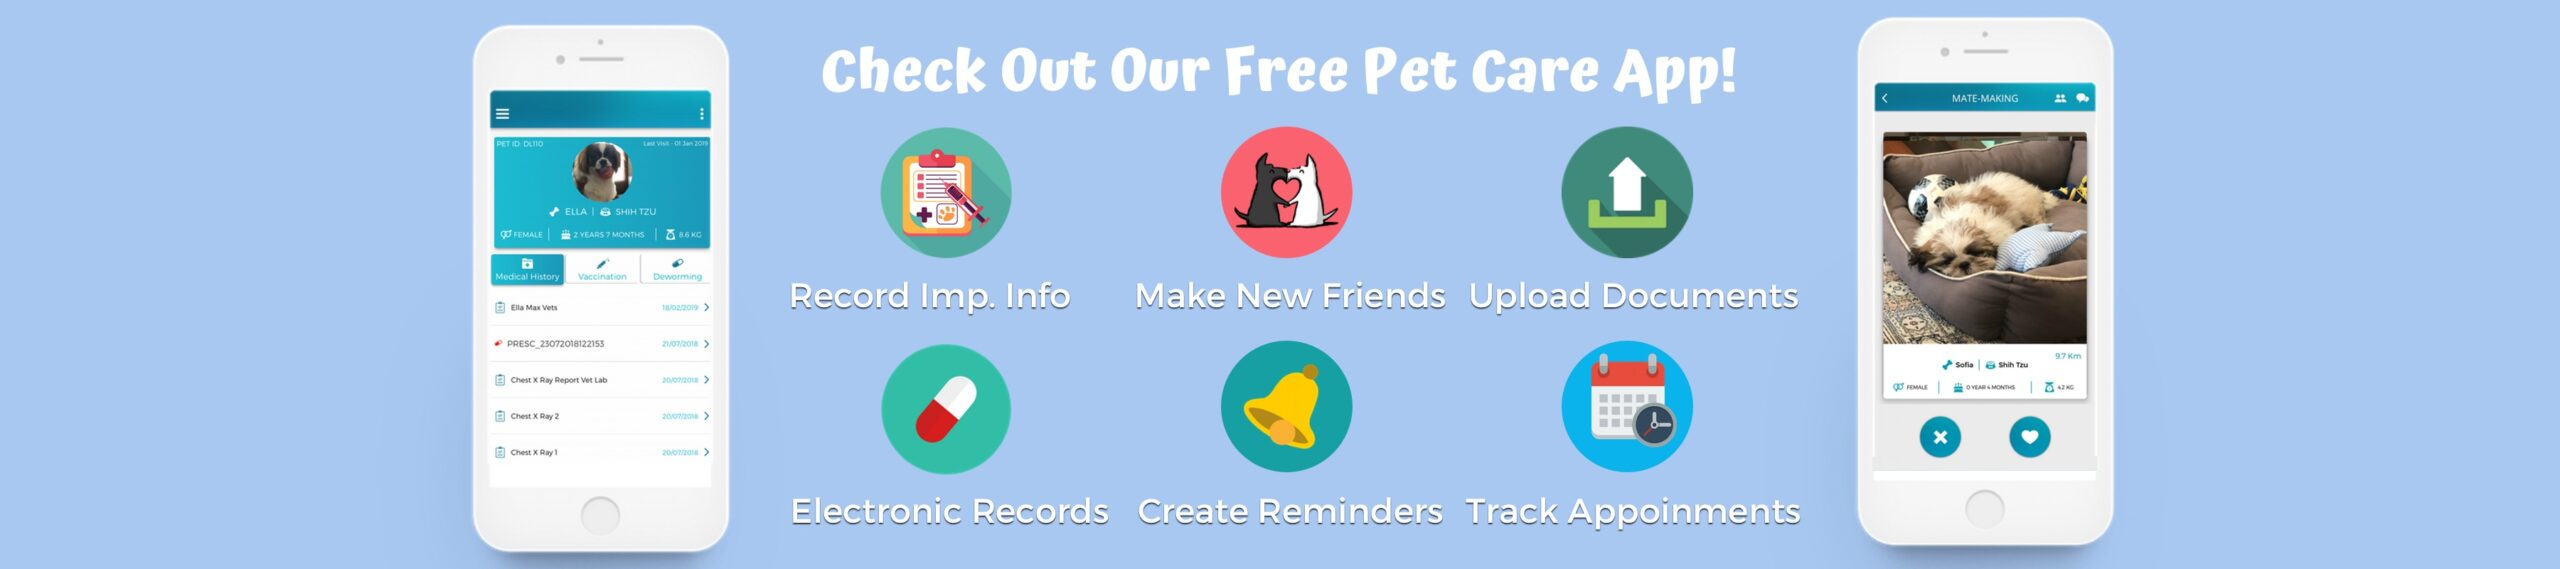 GetVetco's pet care app to download